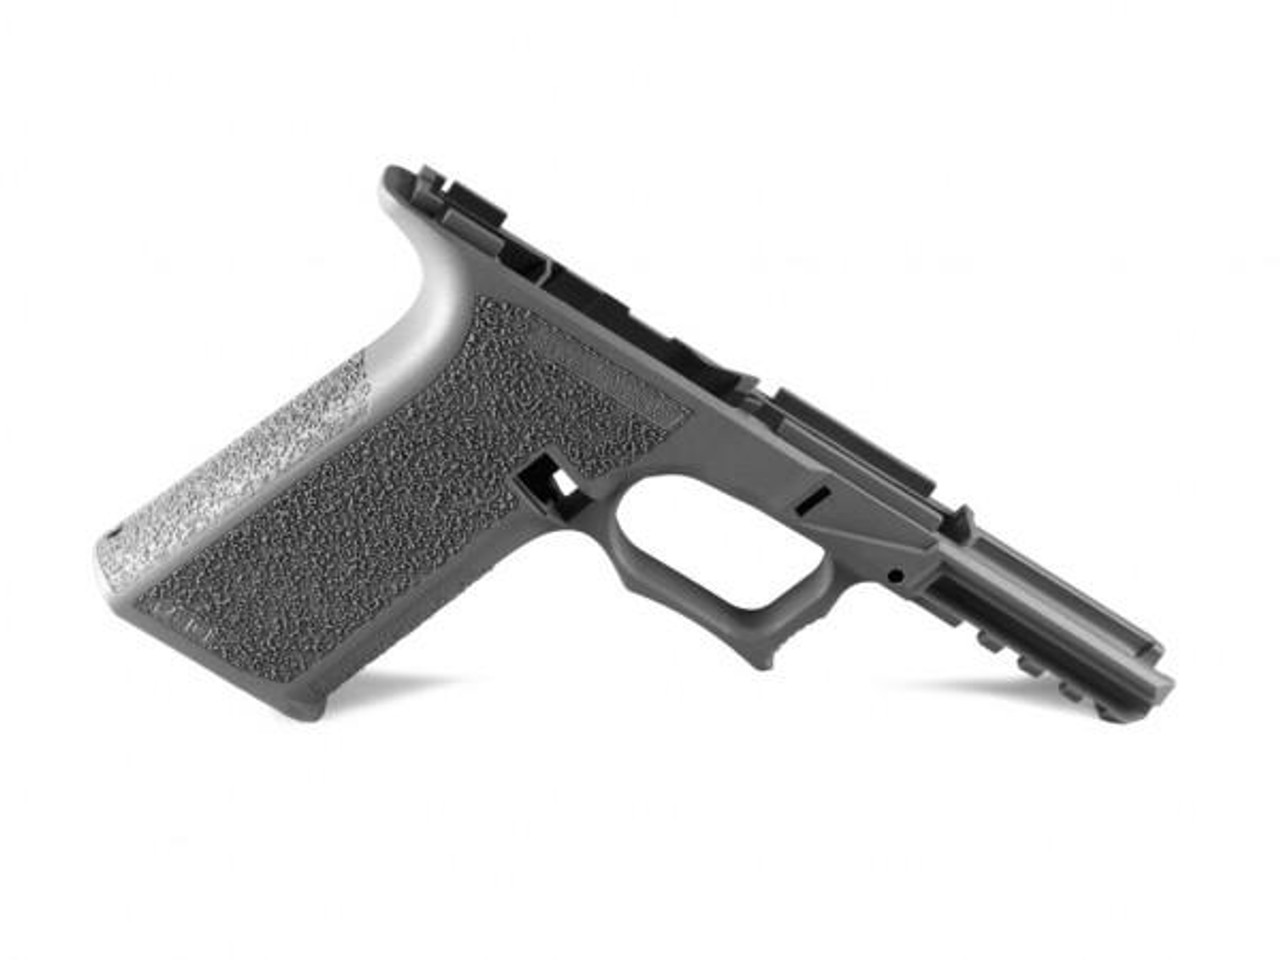 Polymer80 PFC9 Serialized G19/G23 Compact Frame Textured - Grey